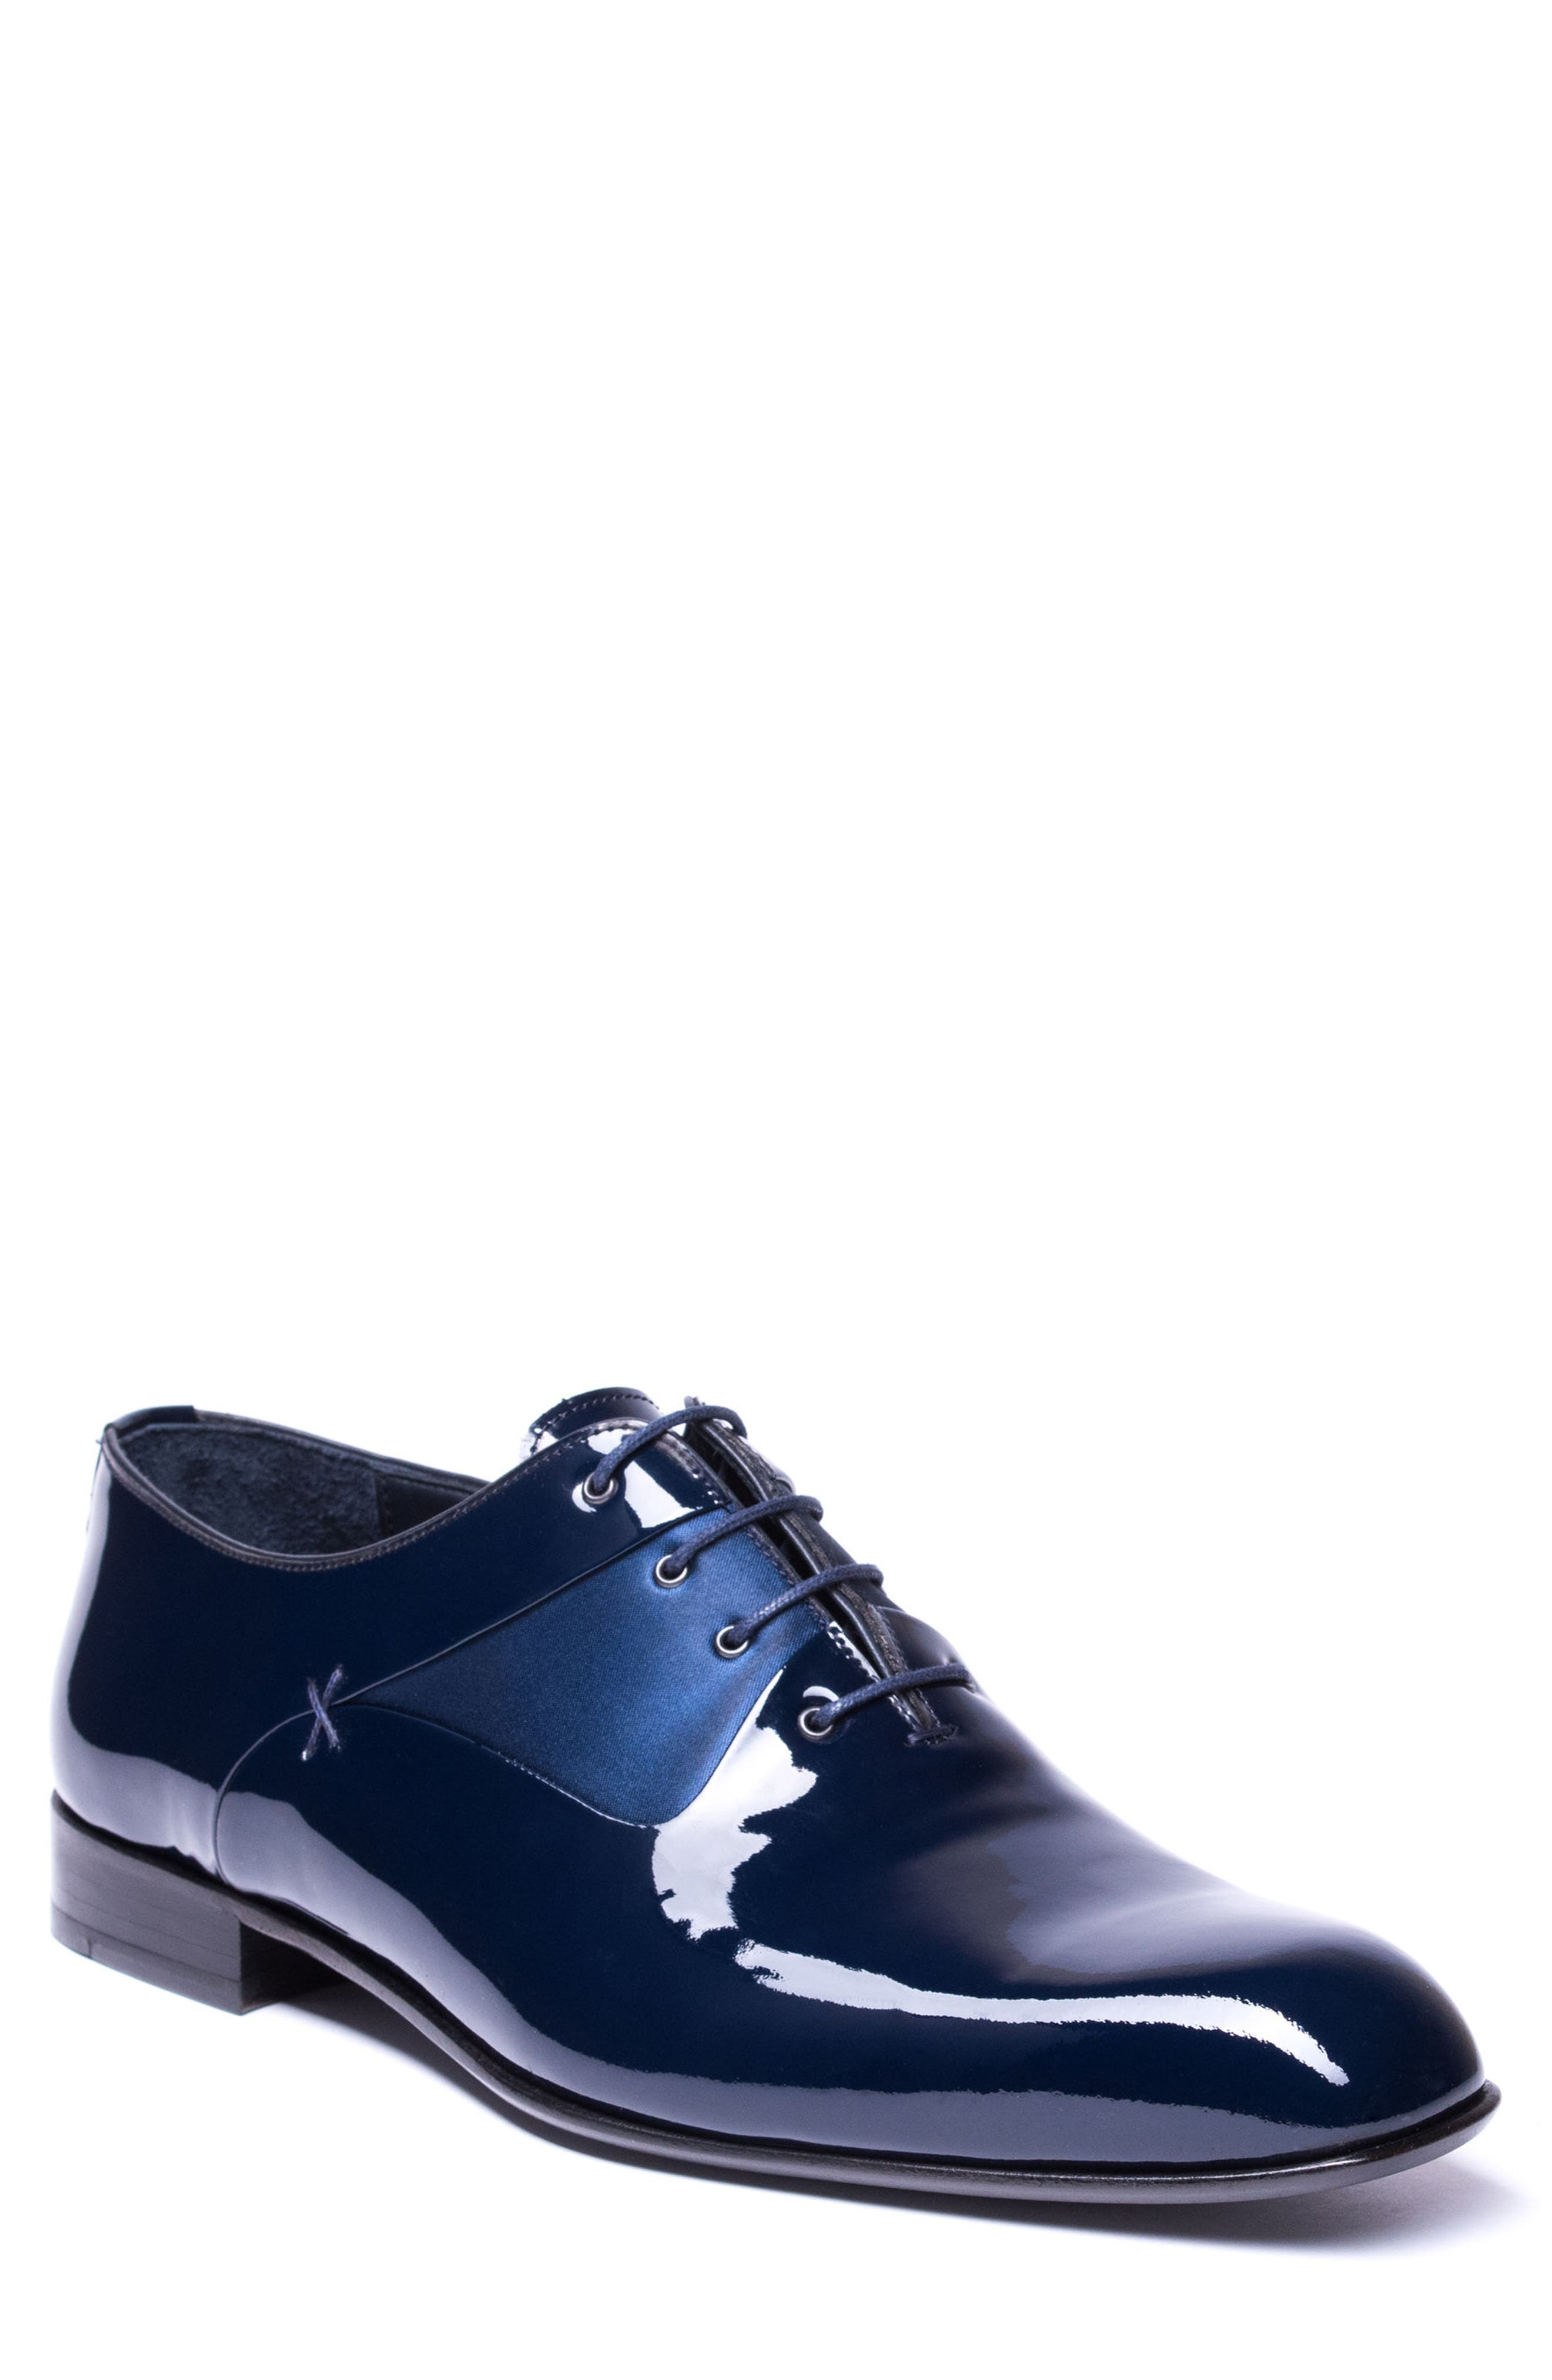 Alternate Image 1 Selected - Jared Lang Matteo Plain Toe Oxford (Men)